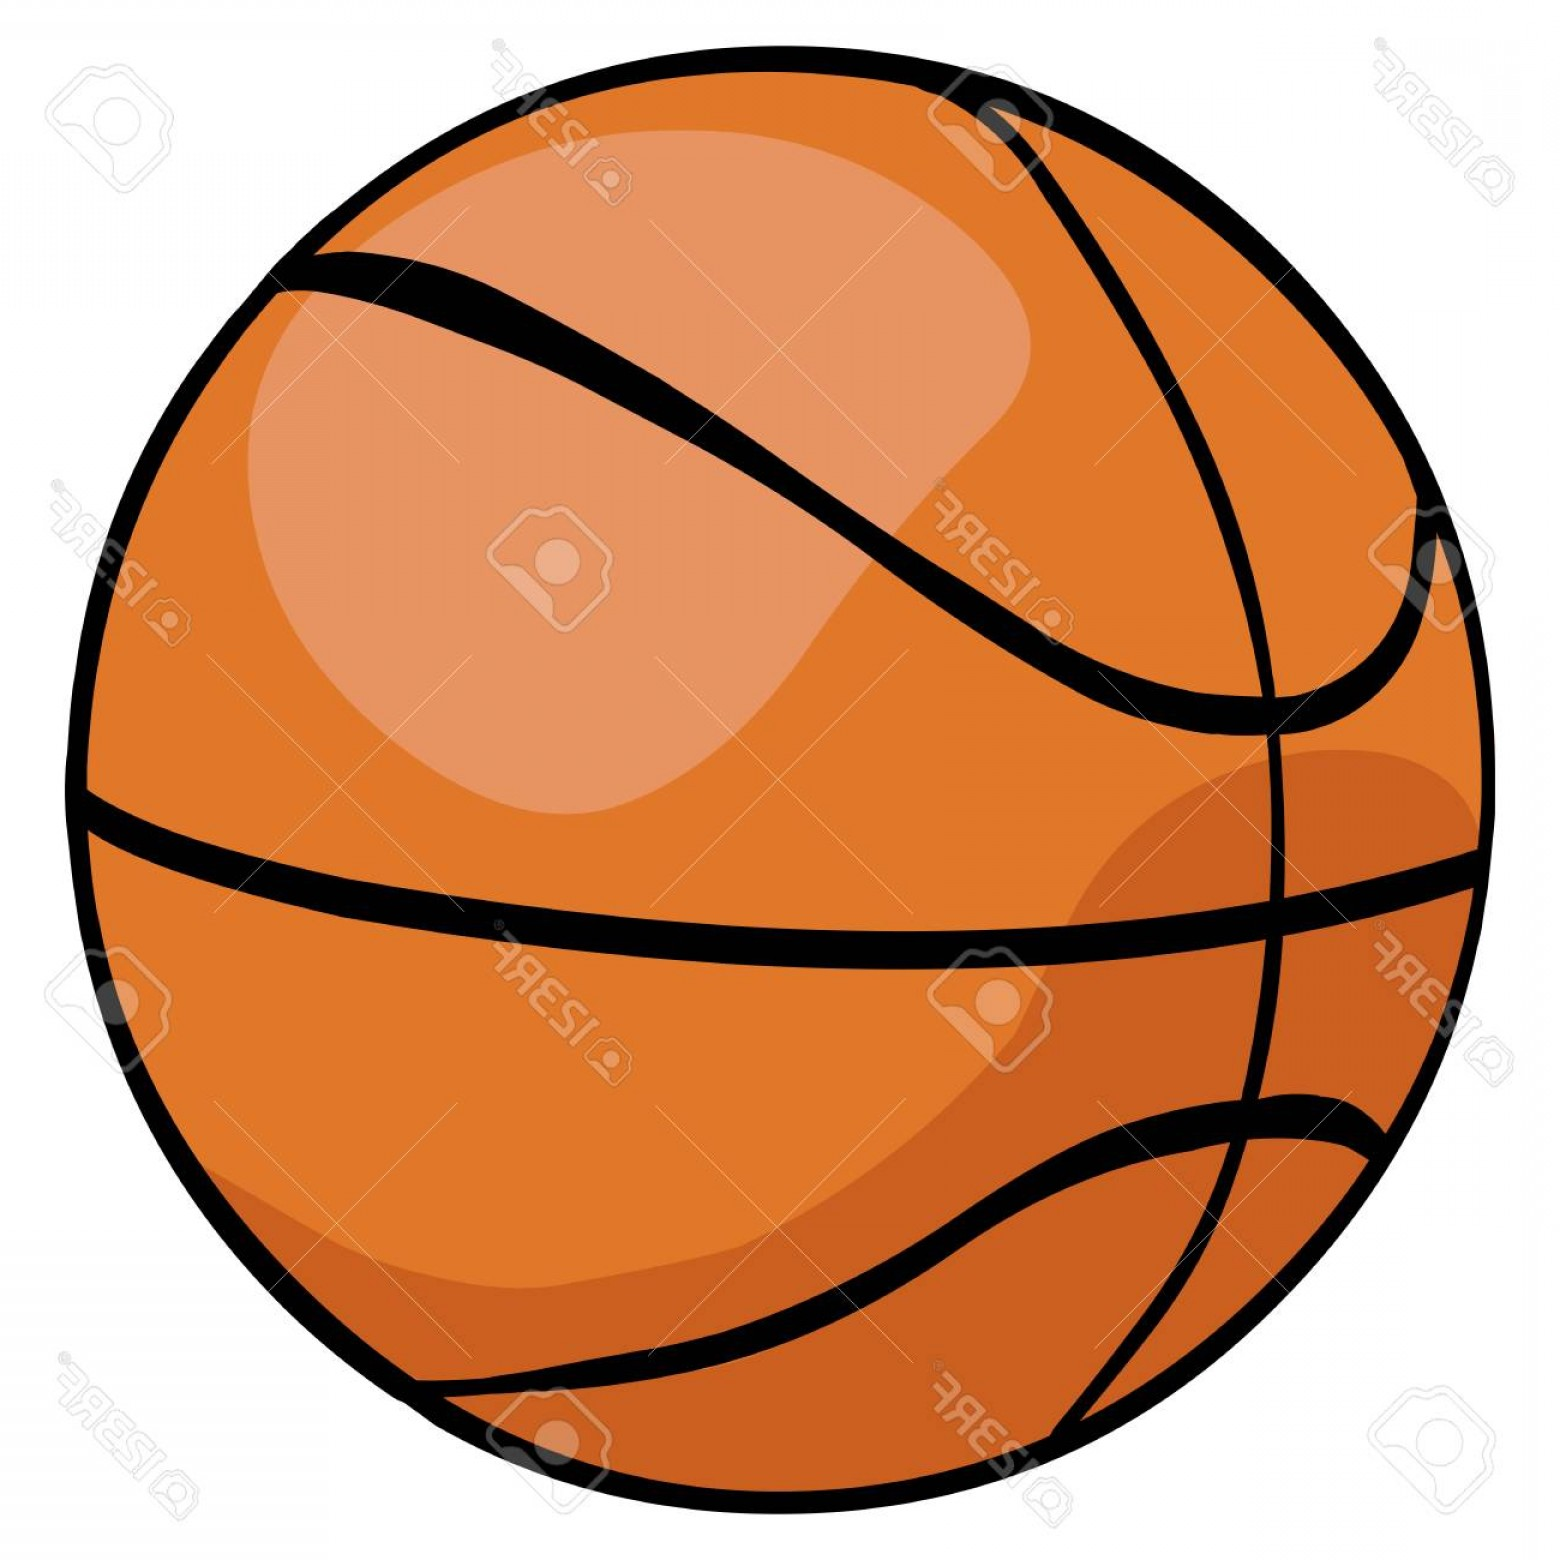 Cartoon Basketball Vector: Photostock Vector Vector Single Cartoon Basketball Ball On White Background